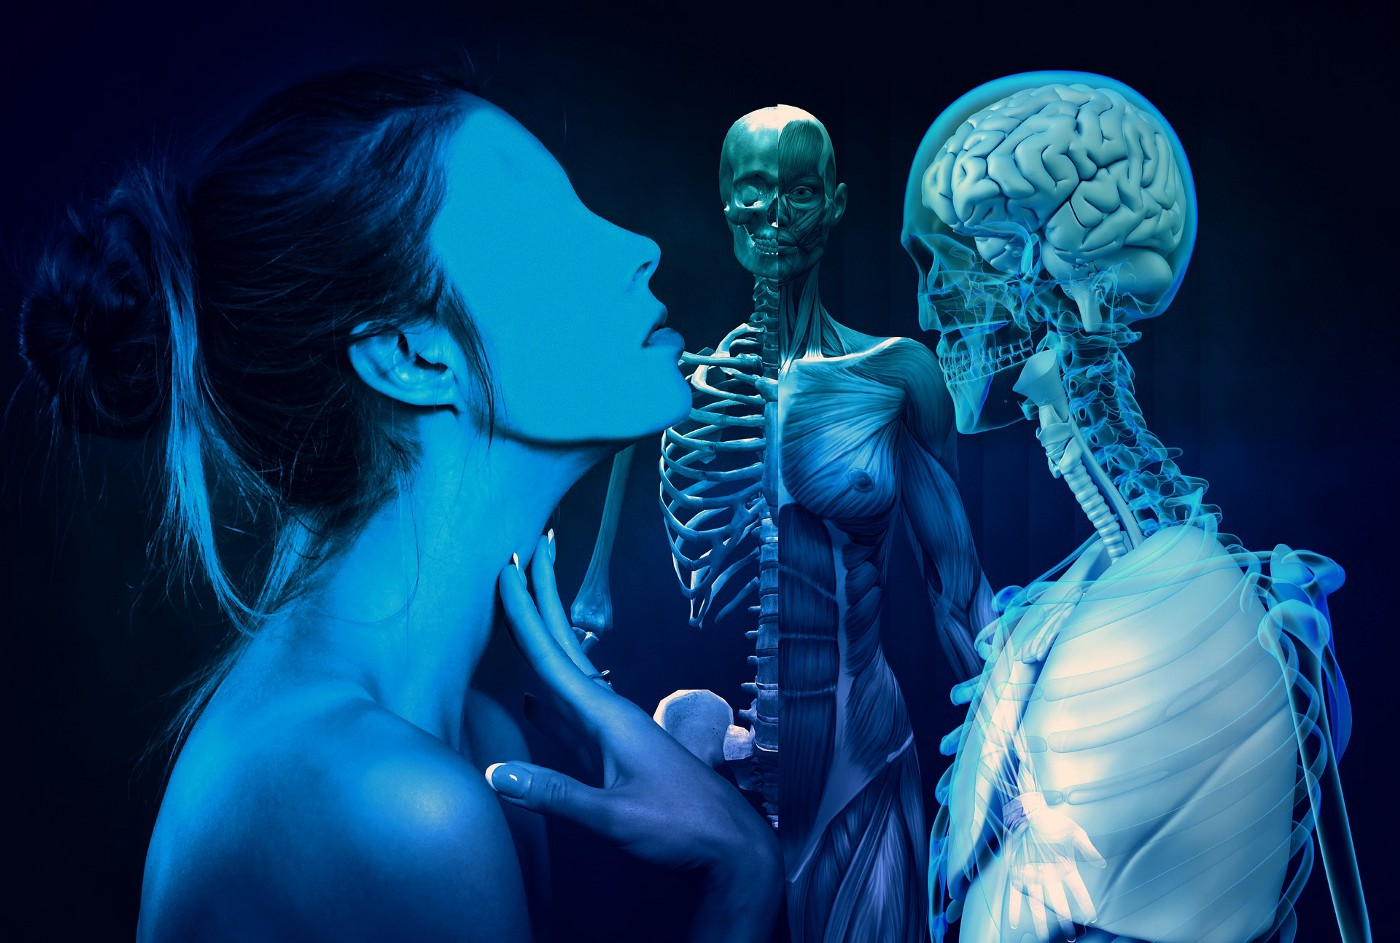 3D Images of a woman's exterior profile, skeletal frame and organs